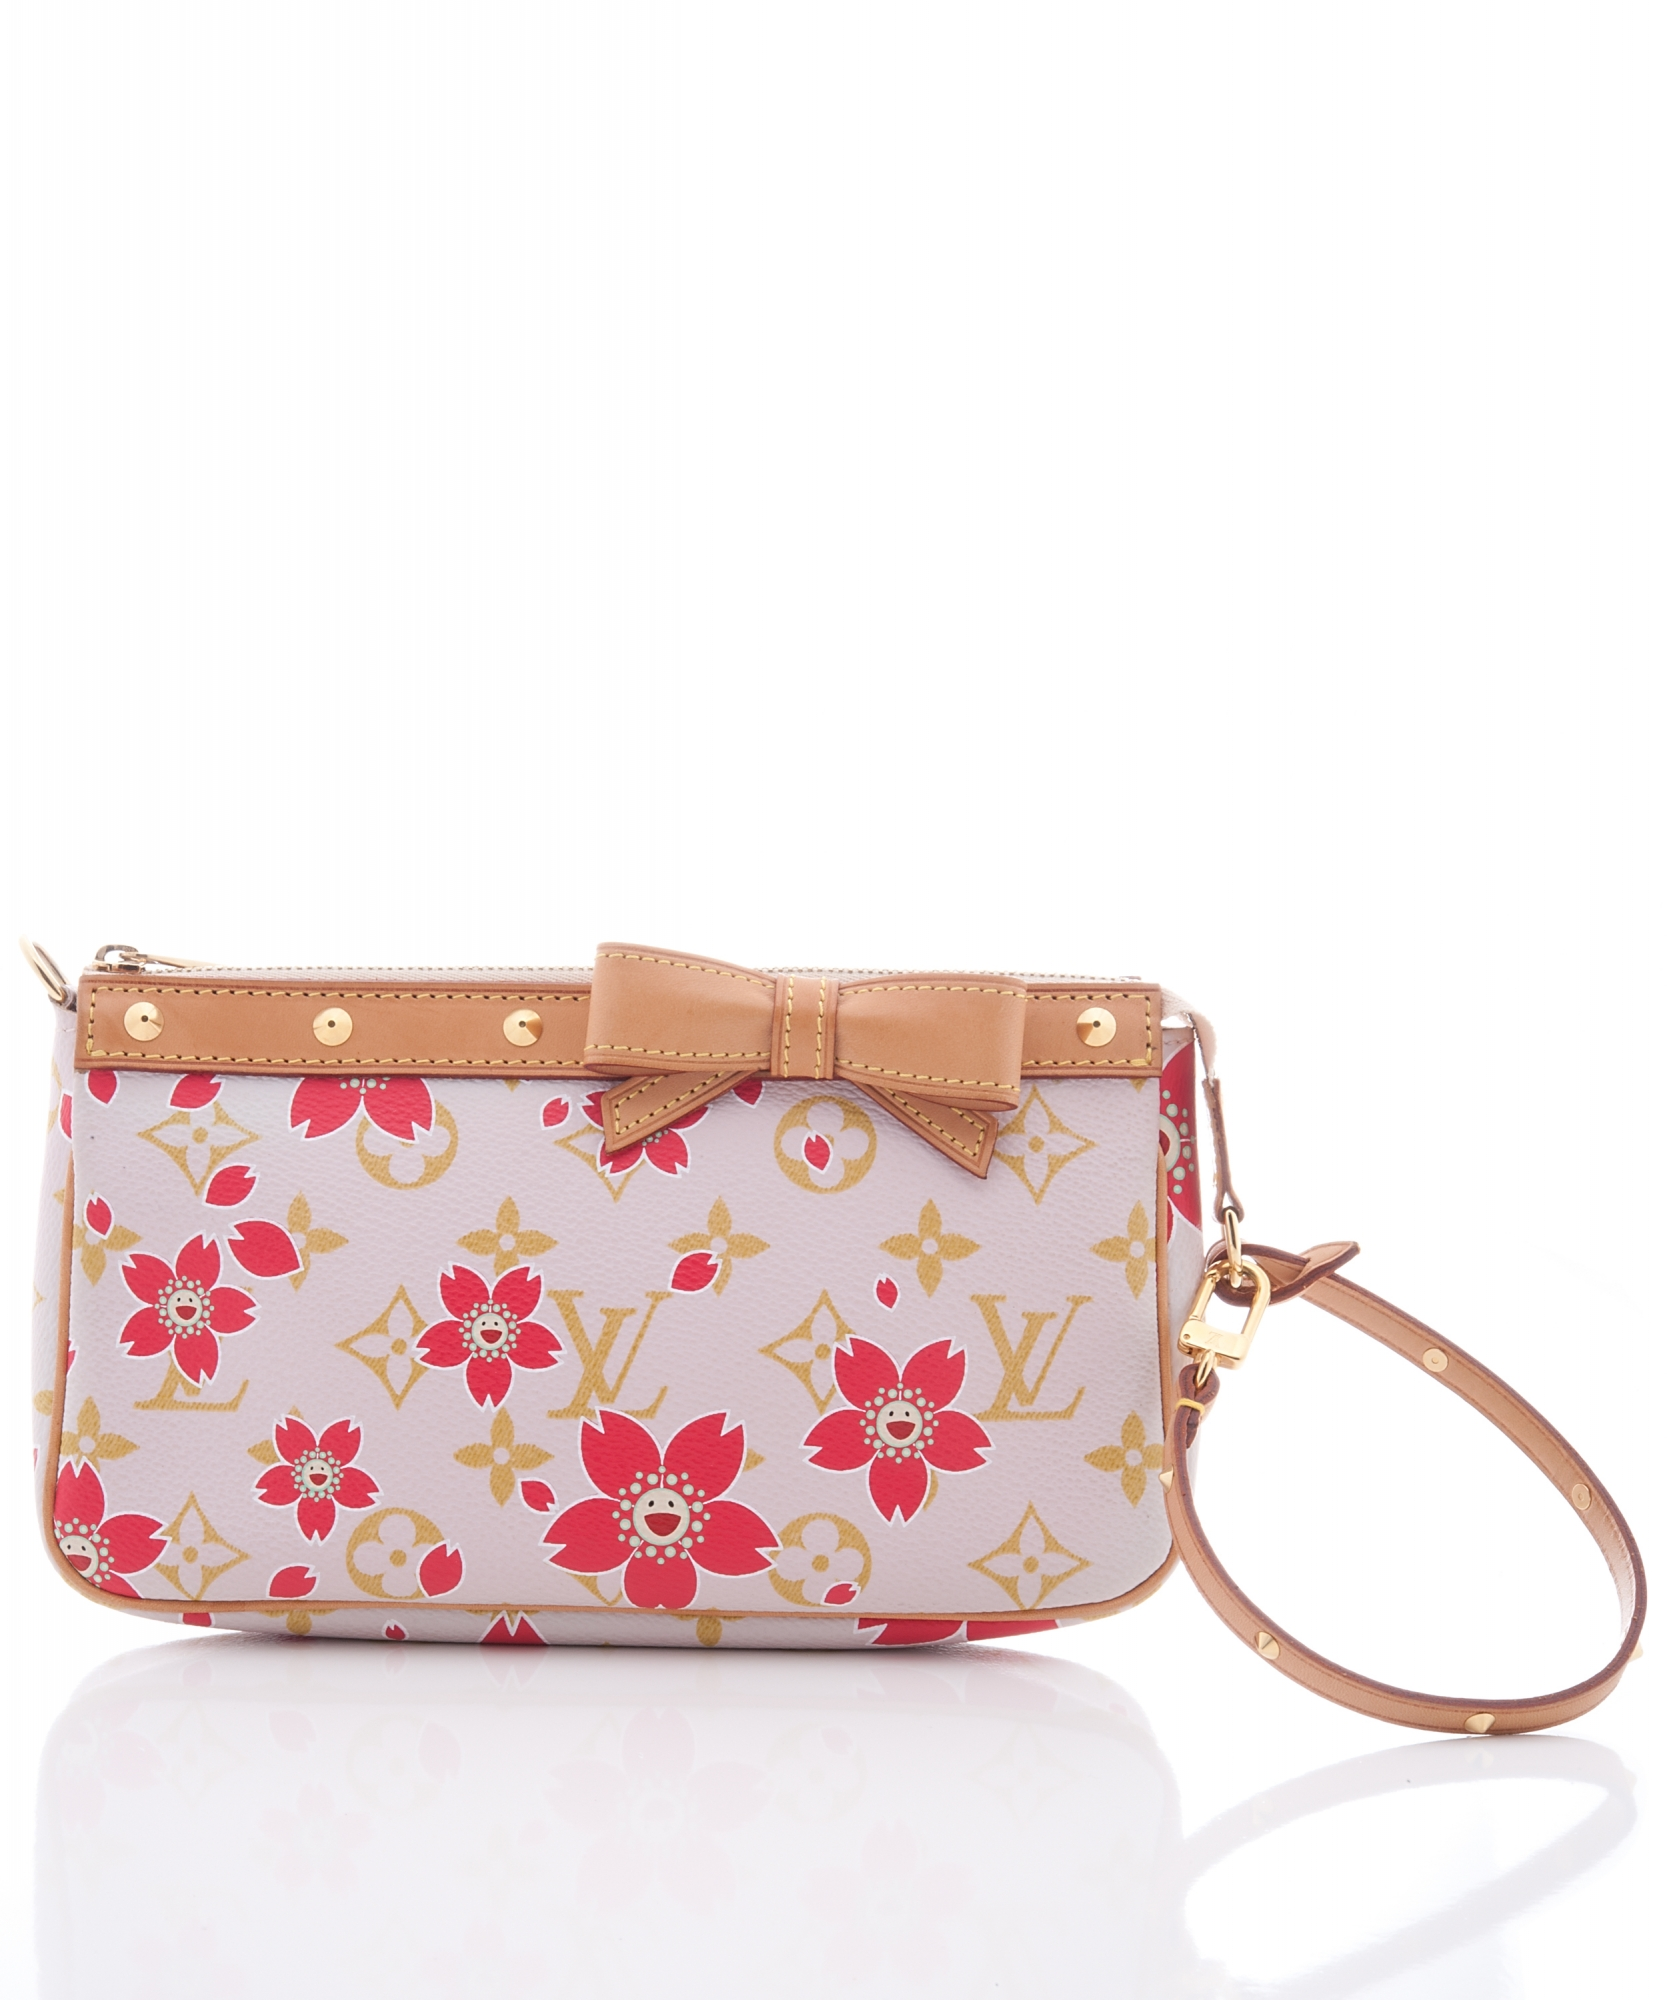 5e3c0812fd ... Louis Vuitton Pochette Handbag, Limited Edition in Pink Monogram Cherry  Blossom. Touch to zoom